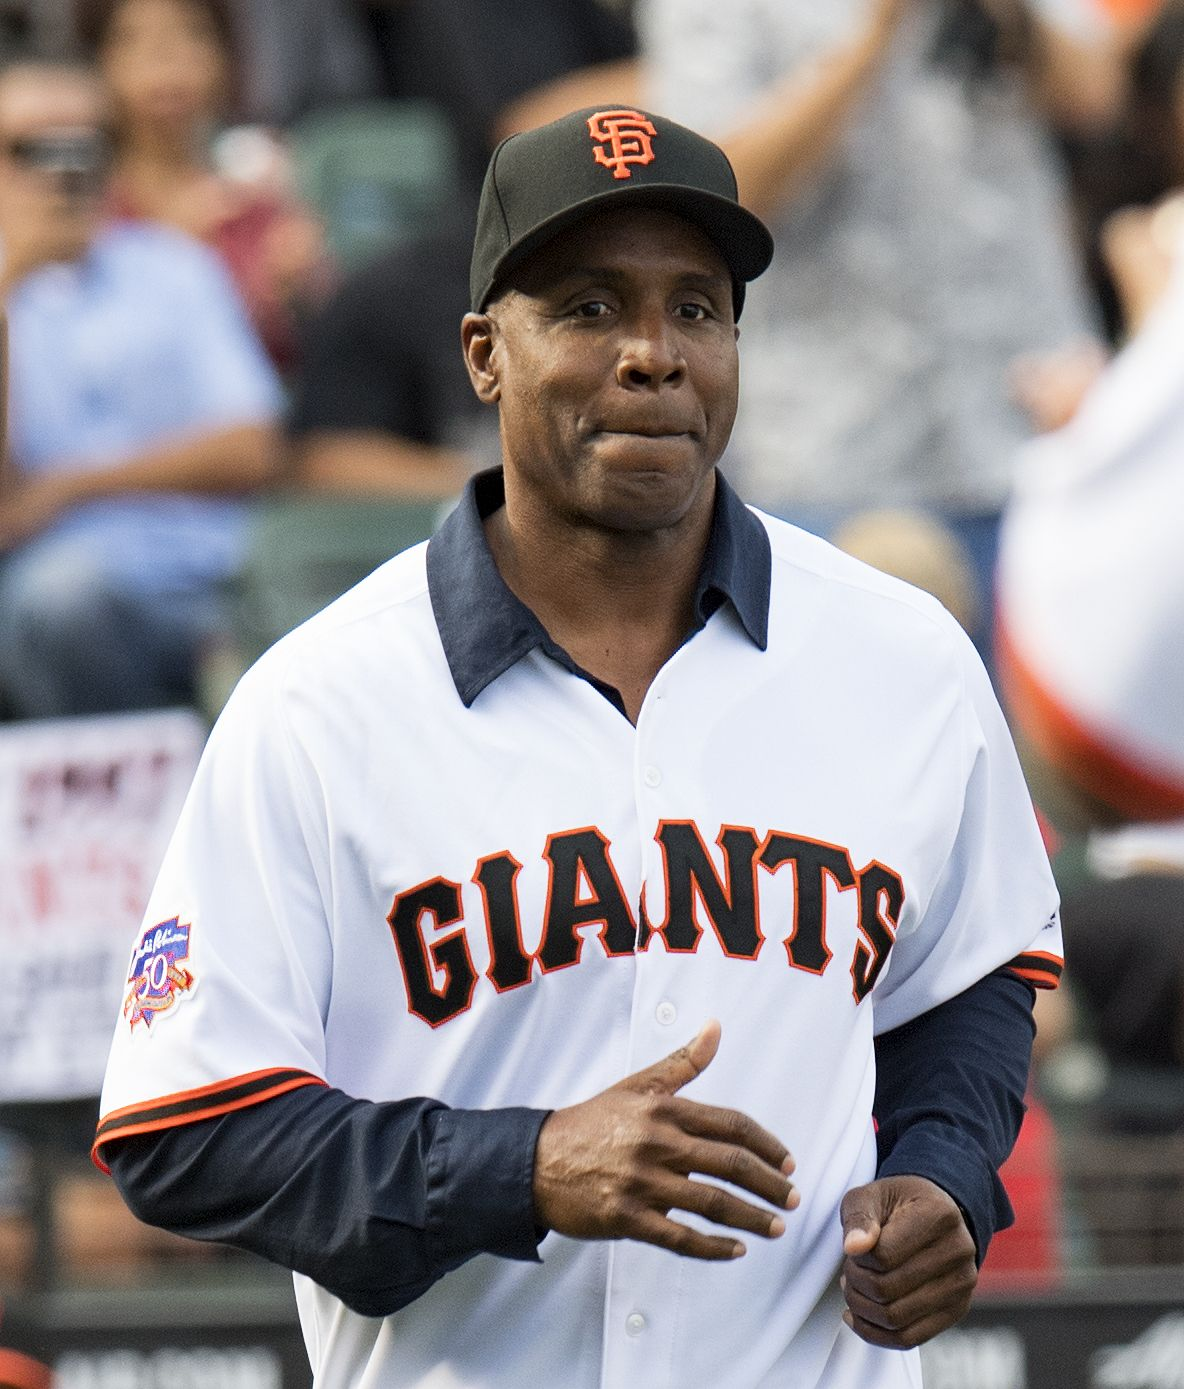 81a455bb7 Barry Bonds at a pre-game celebration of the 1997 Giants. Photo by Valerie  Shoaps CSM REX Shutterstock